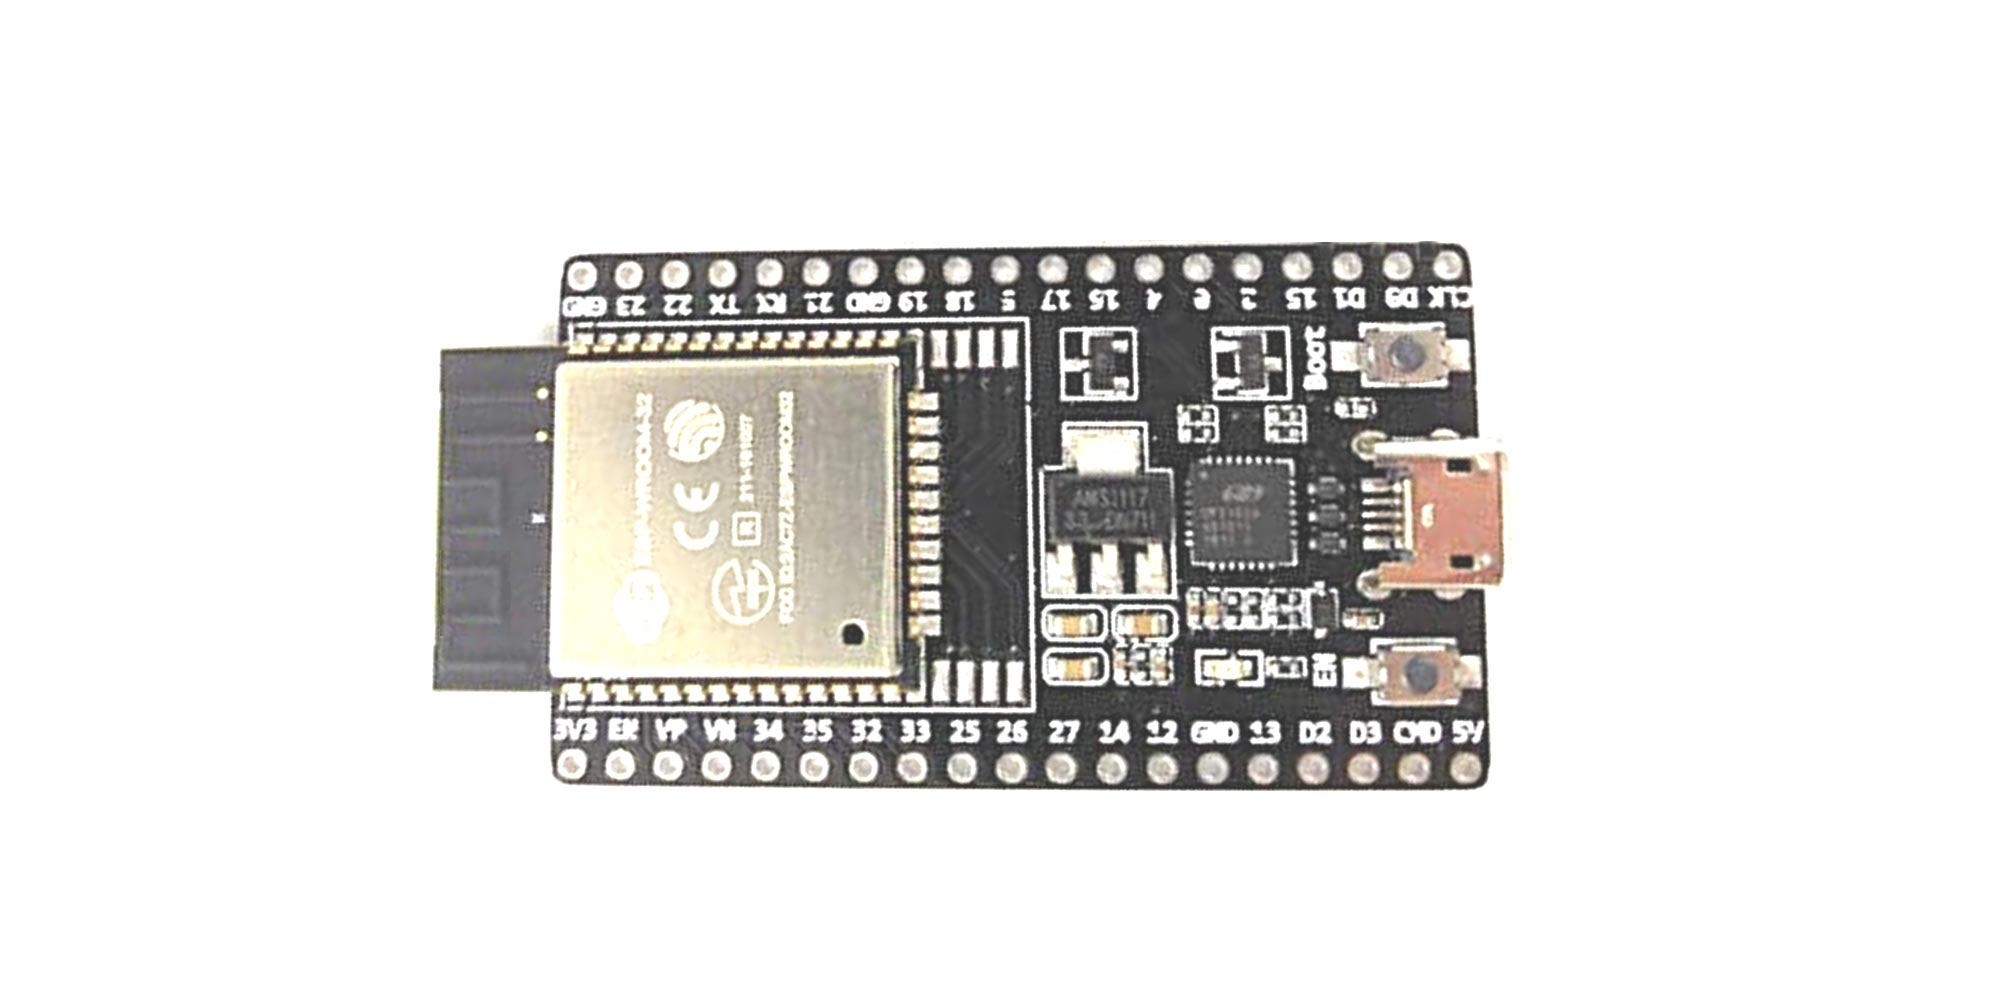 ESP32 DevKitC Pinout, Overview, Features & Datasheet on